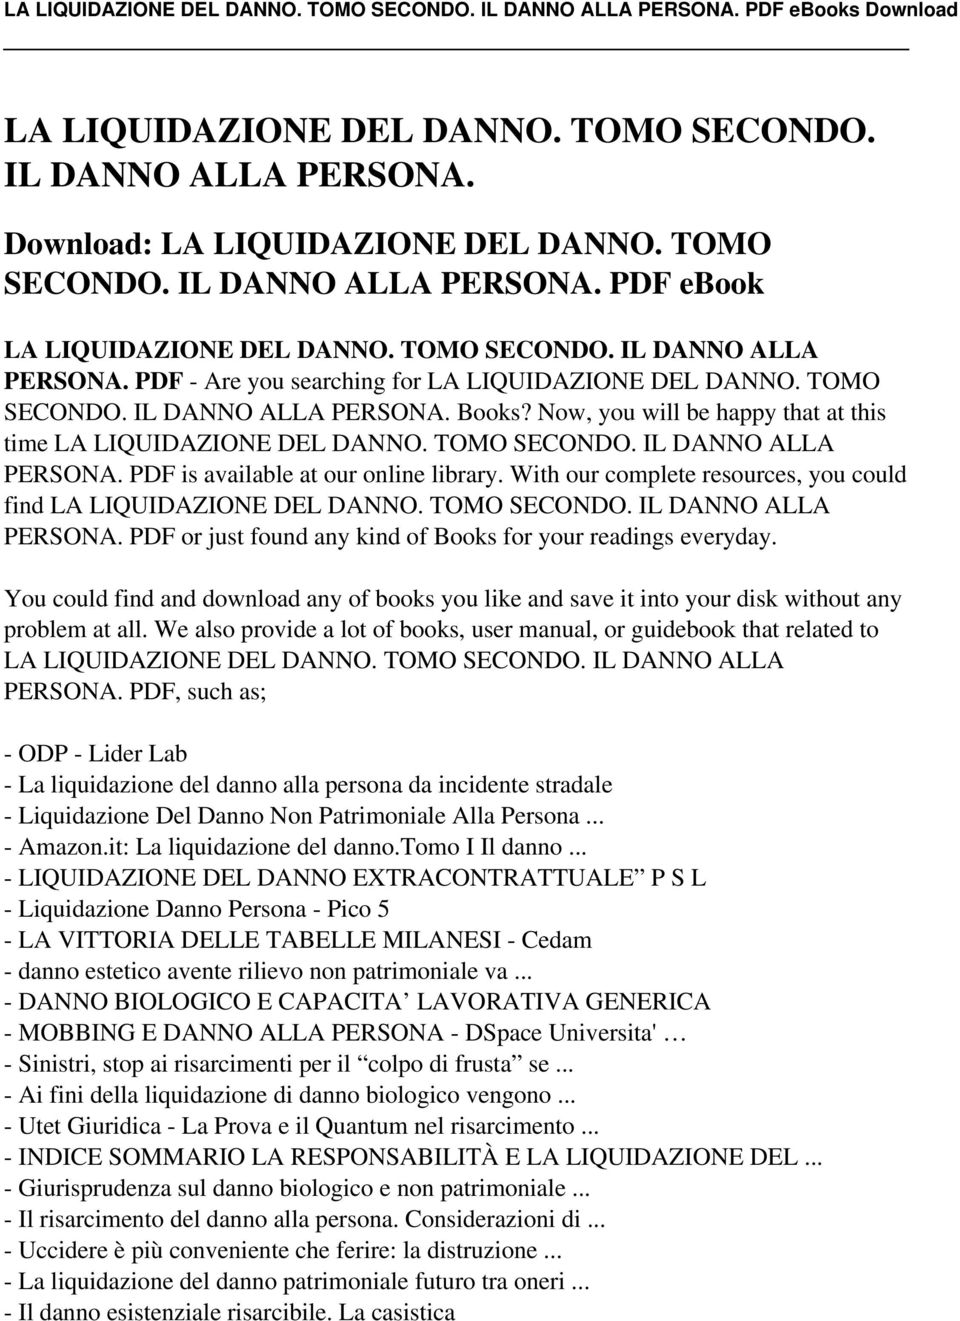 With our complete resources, you could find LA LIQUIDAZIONE DEL DANNO. TOMO SECONDO. IL DANNO ALLA PERSONA. PDF or just found any kind of Books for your readings everyday.